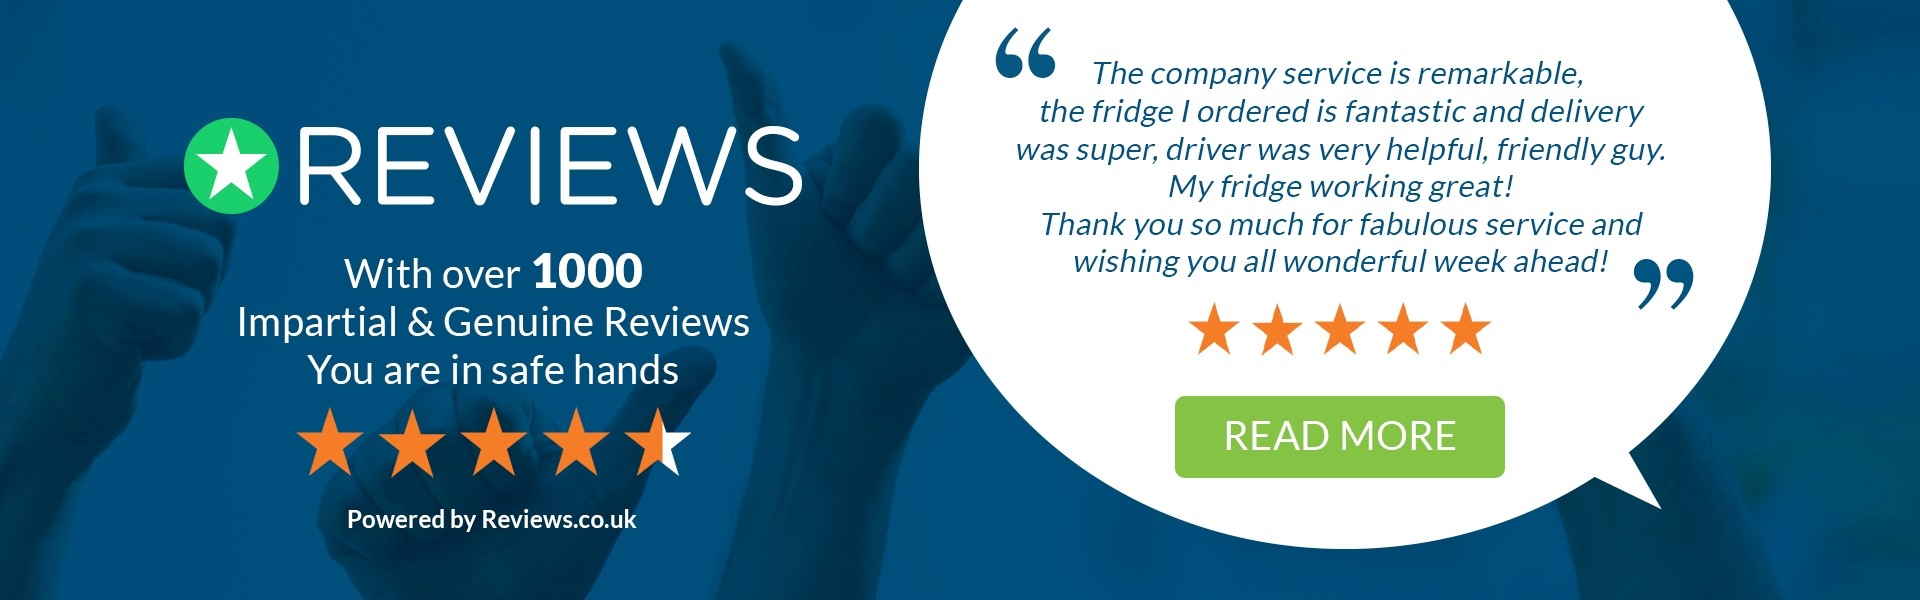 We are highly rated on Reviews.co.uk